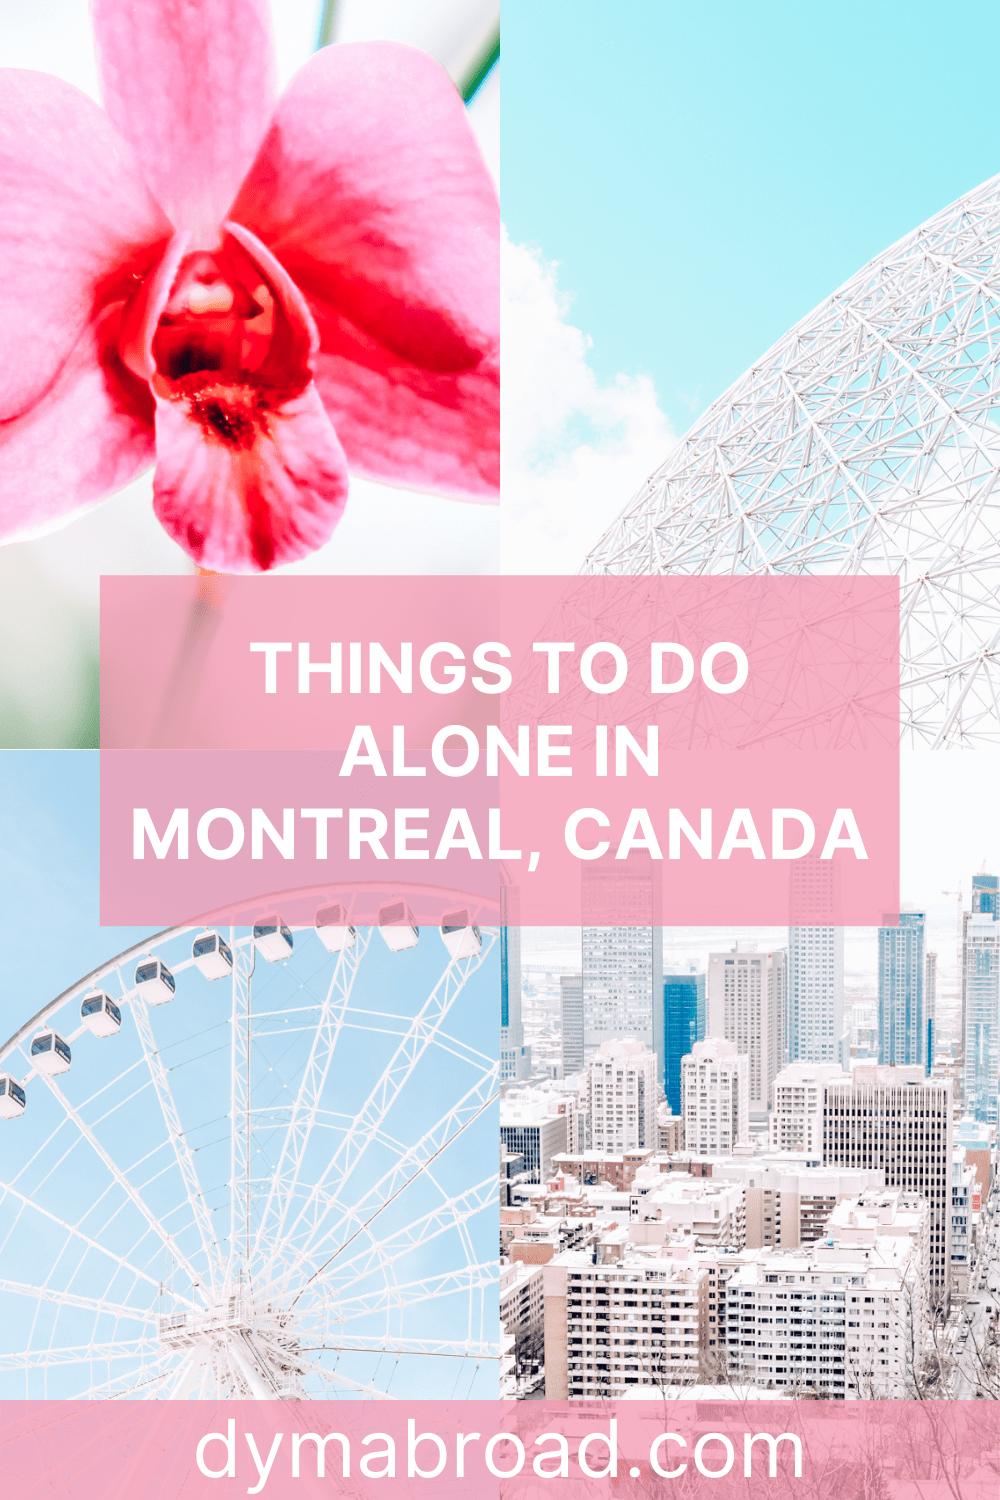 Things to do alone in Montreal Pinterest image